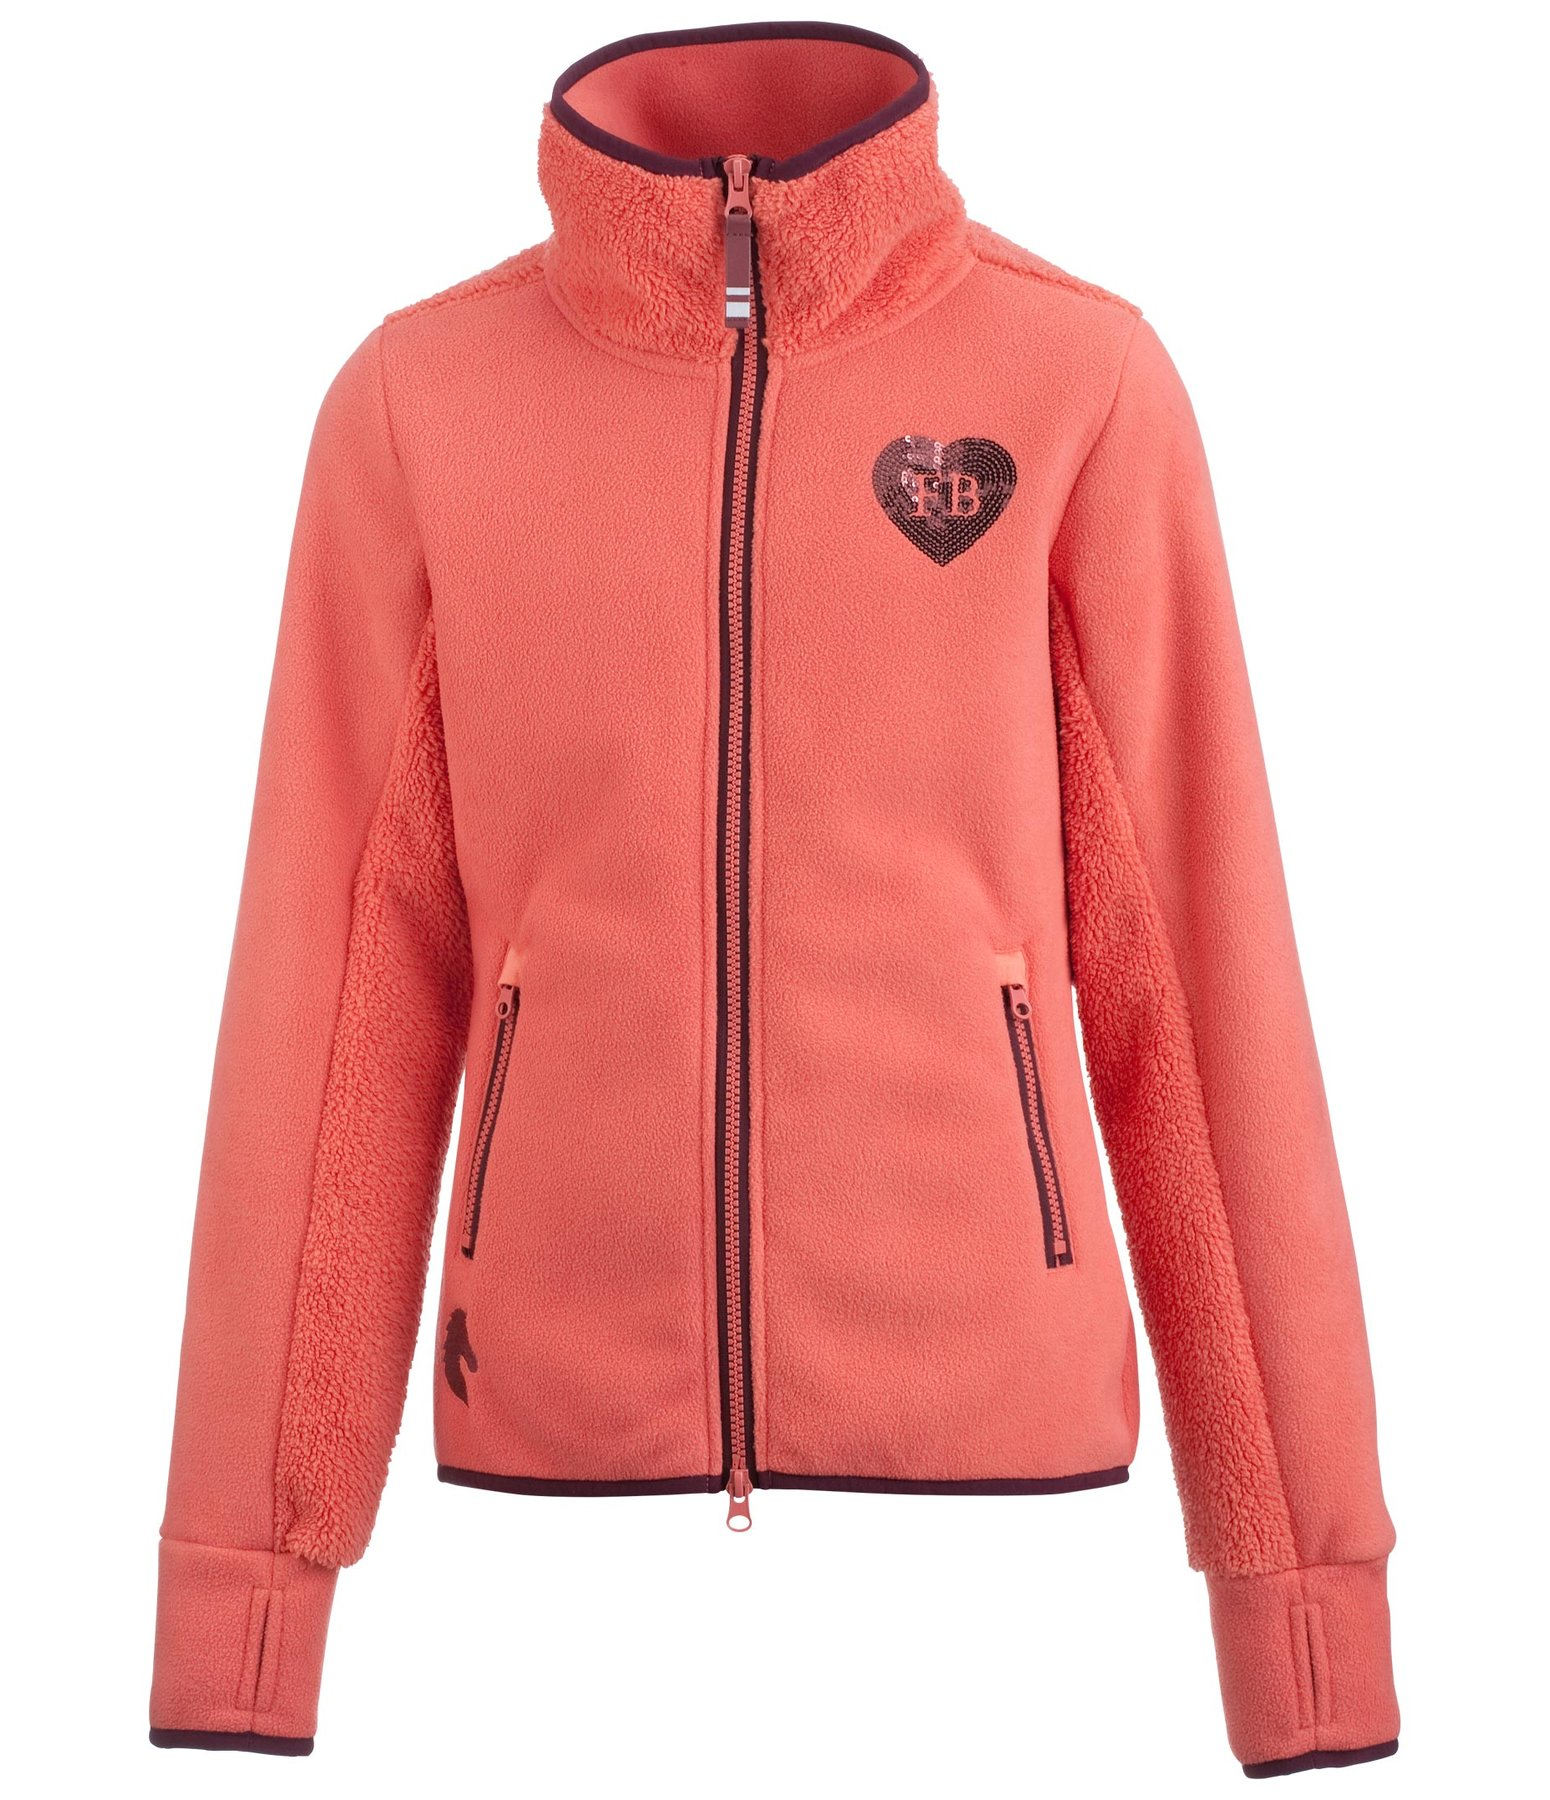 Children's Fleece Jacket Belinda